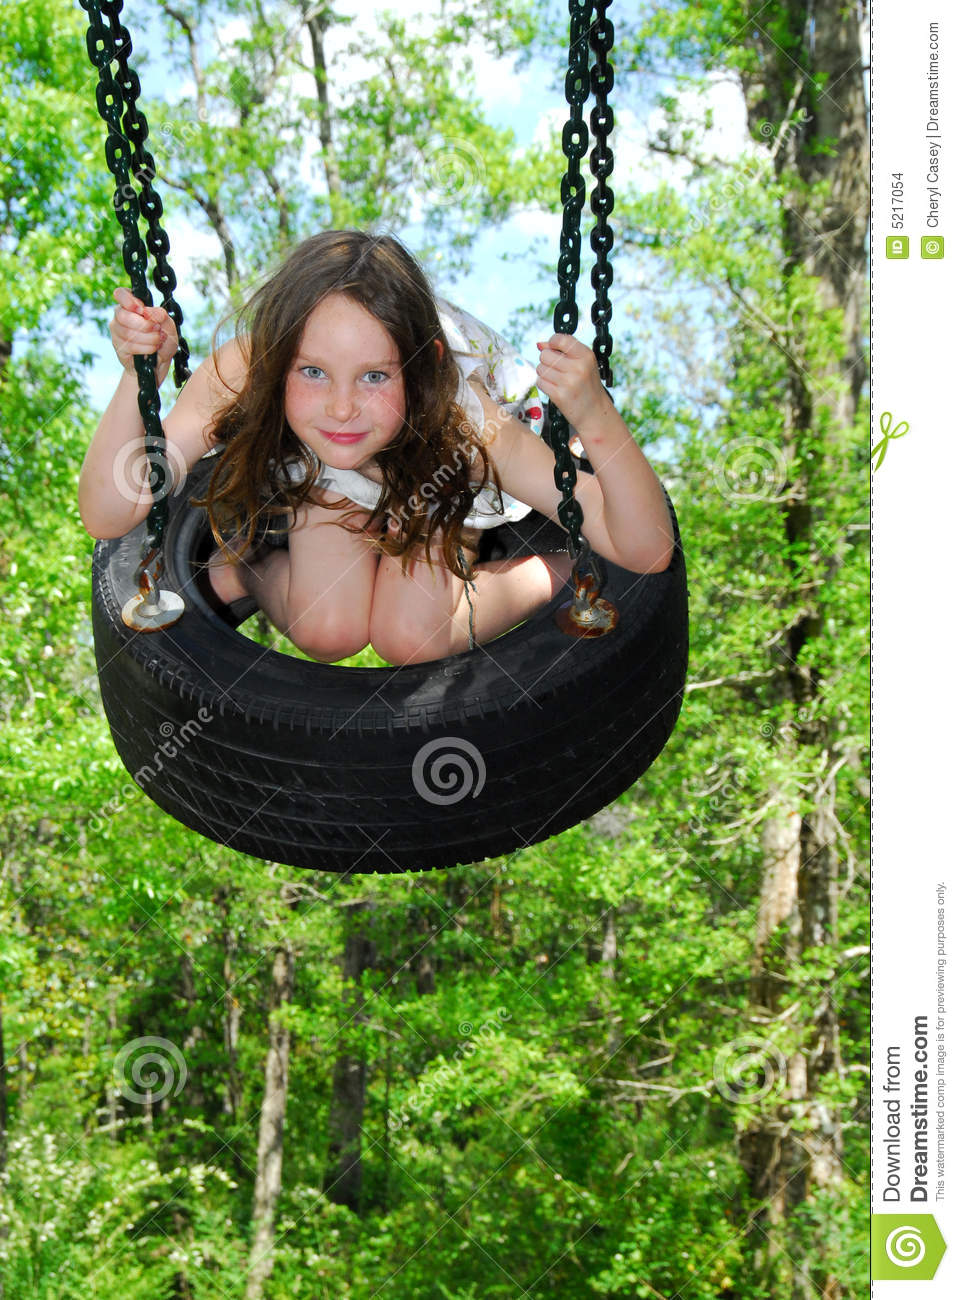 Cute Girl On Tire Swing Stock Images - Image: 5217054